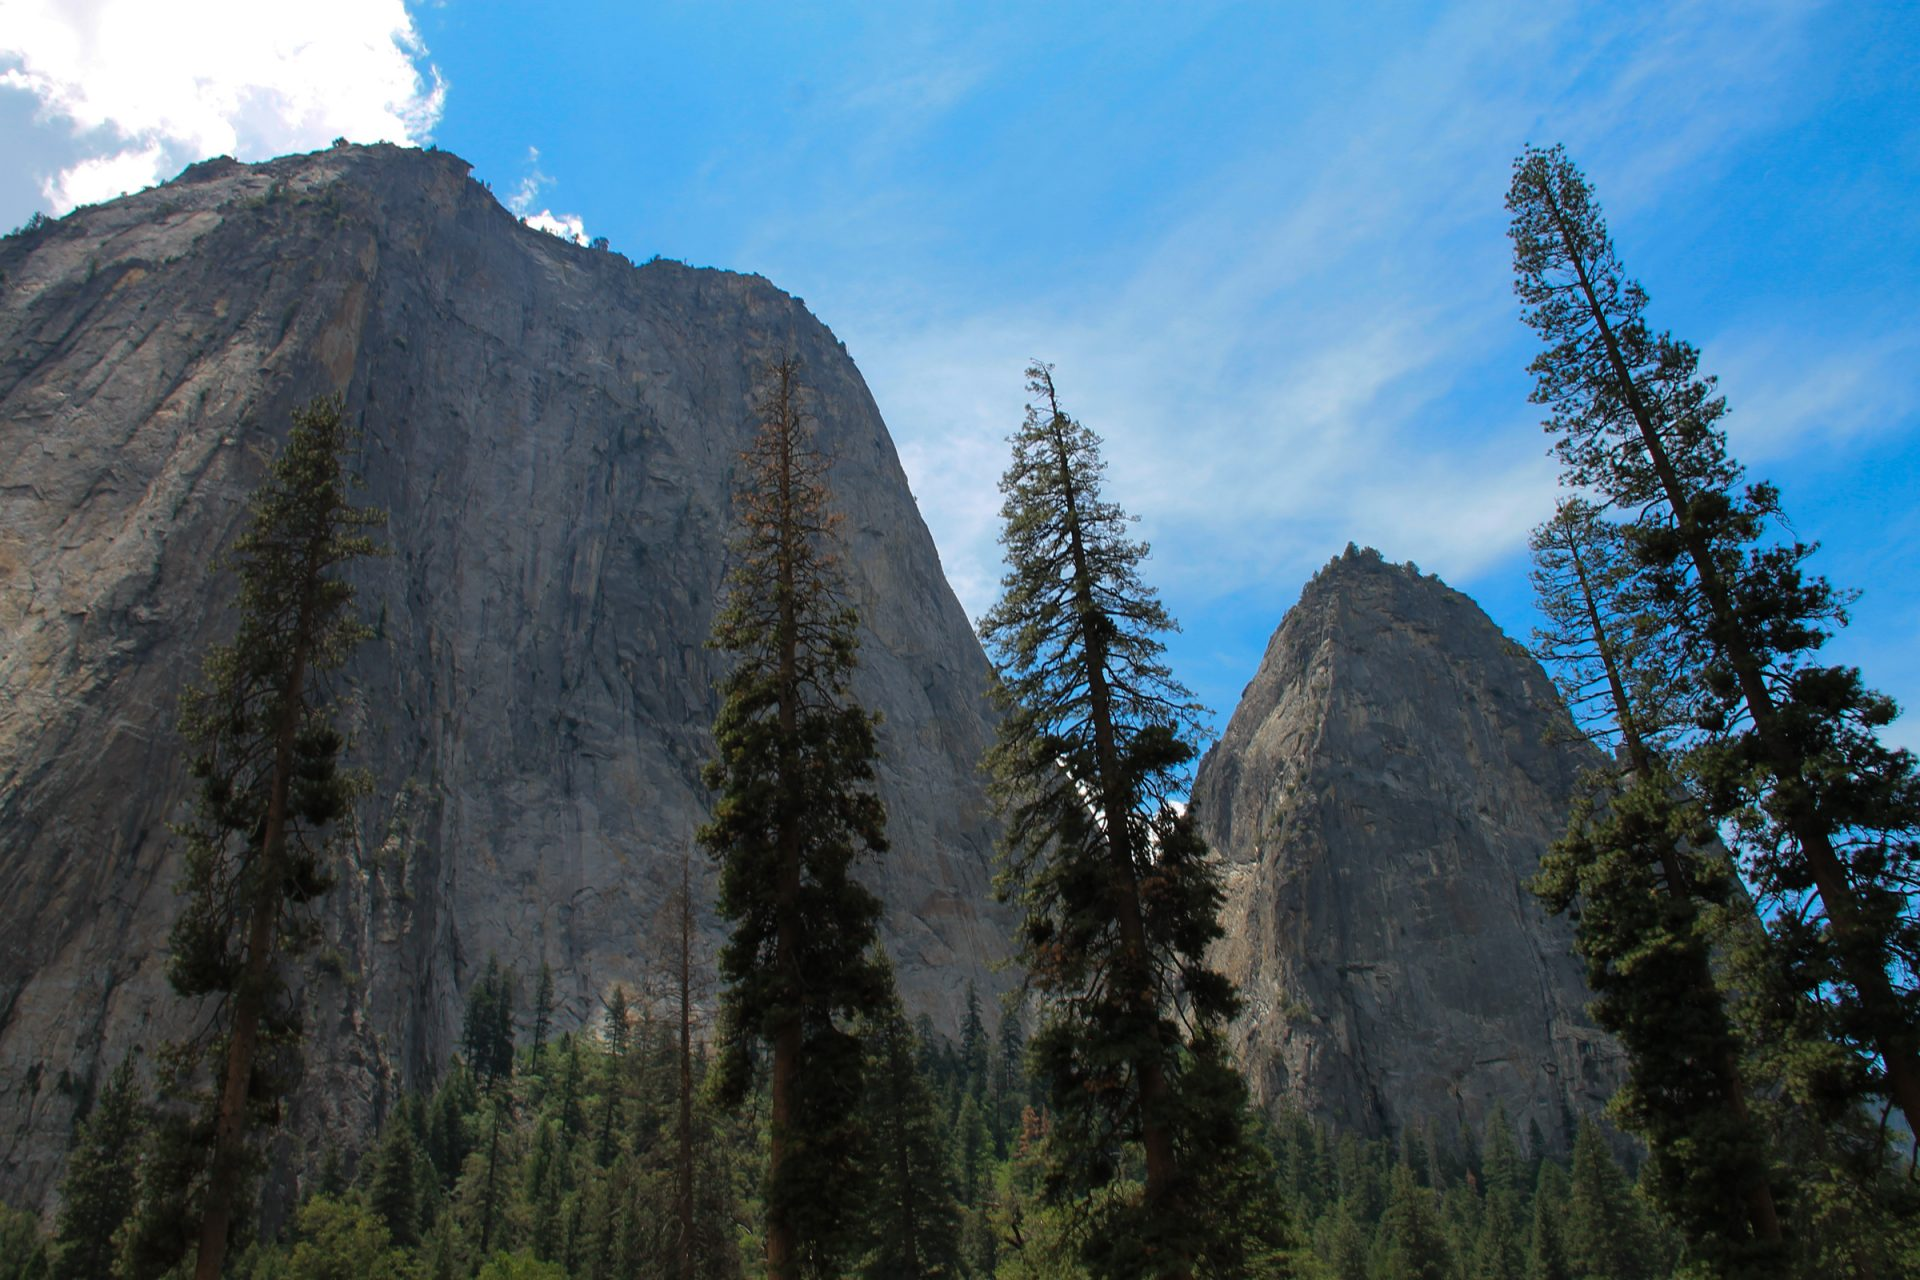 Tall Trees in Front of Rock Mountain